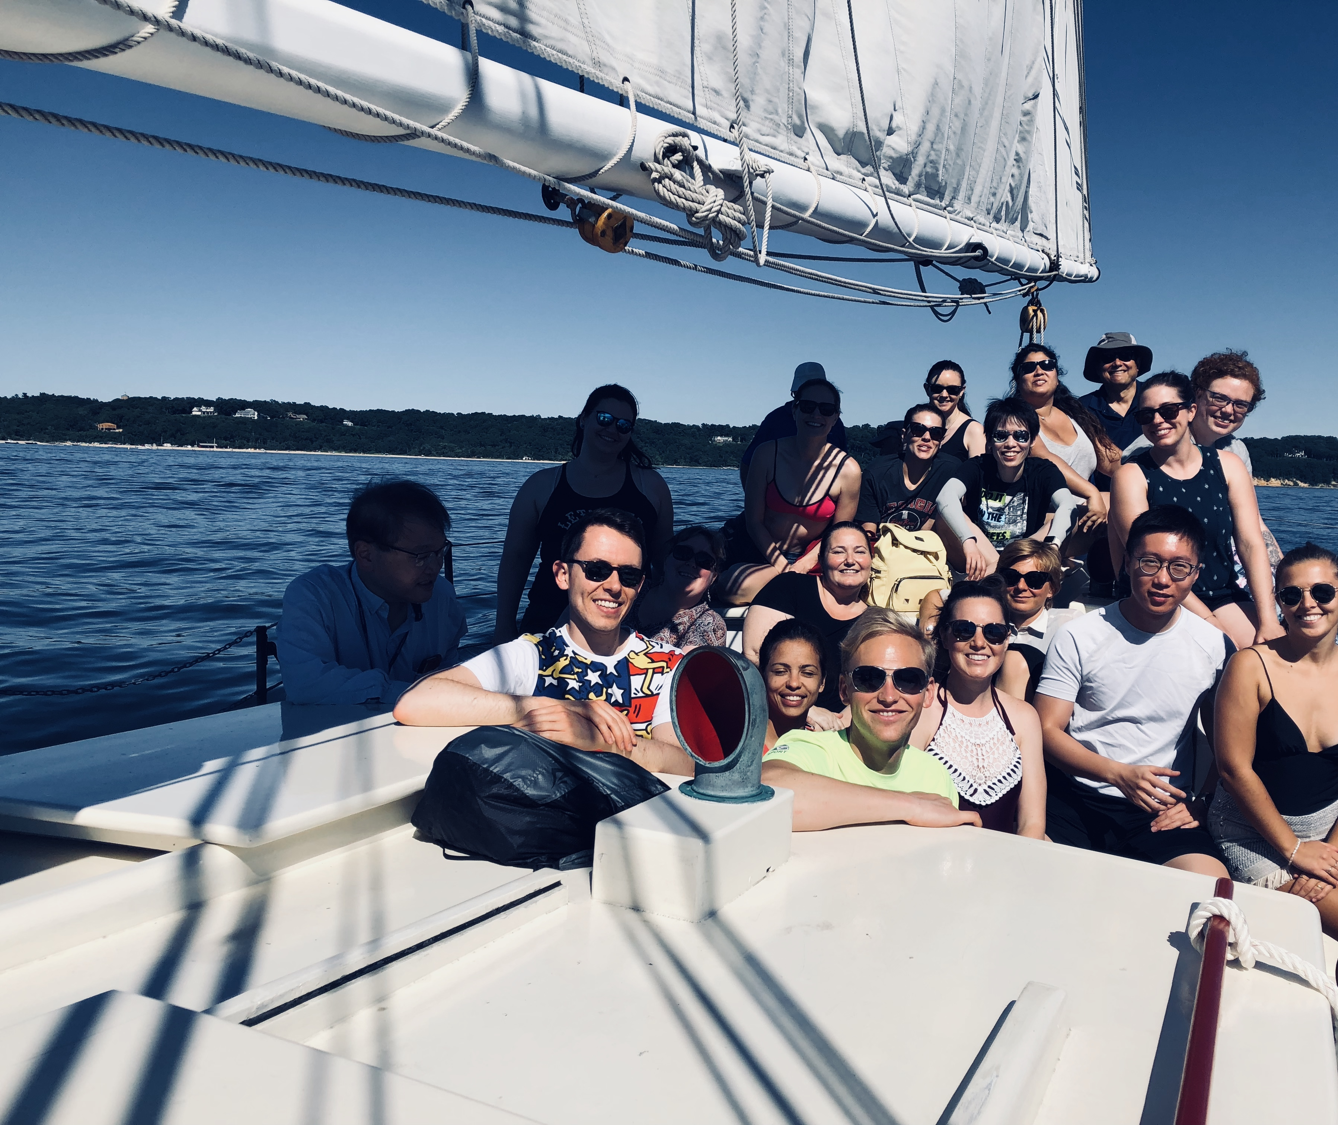 Taking a break from the course with a sail trip around the Bay.